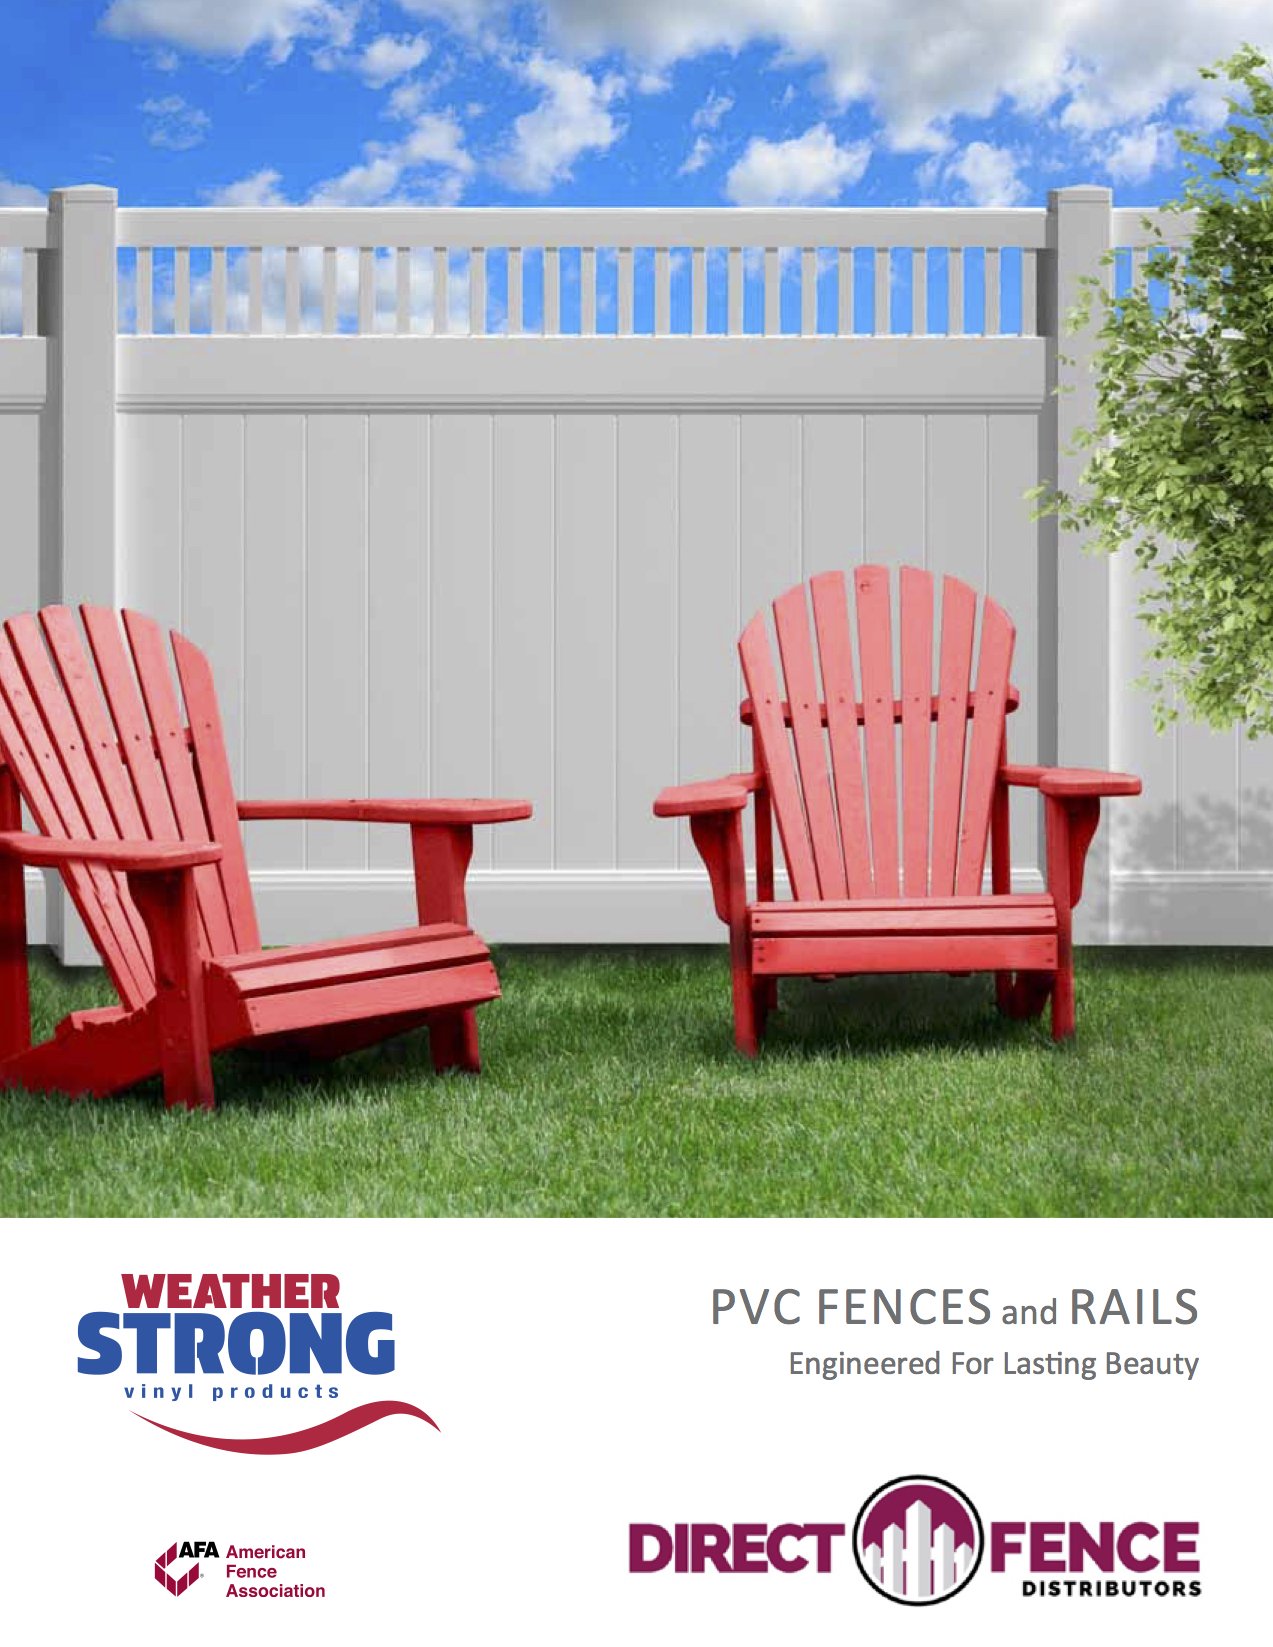 vinyl fence New Brusnwick NJ brochure